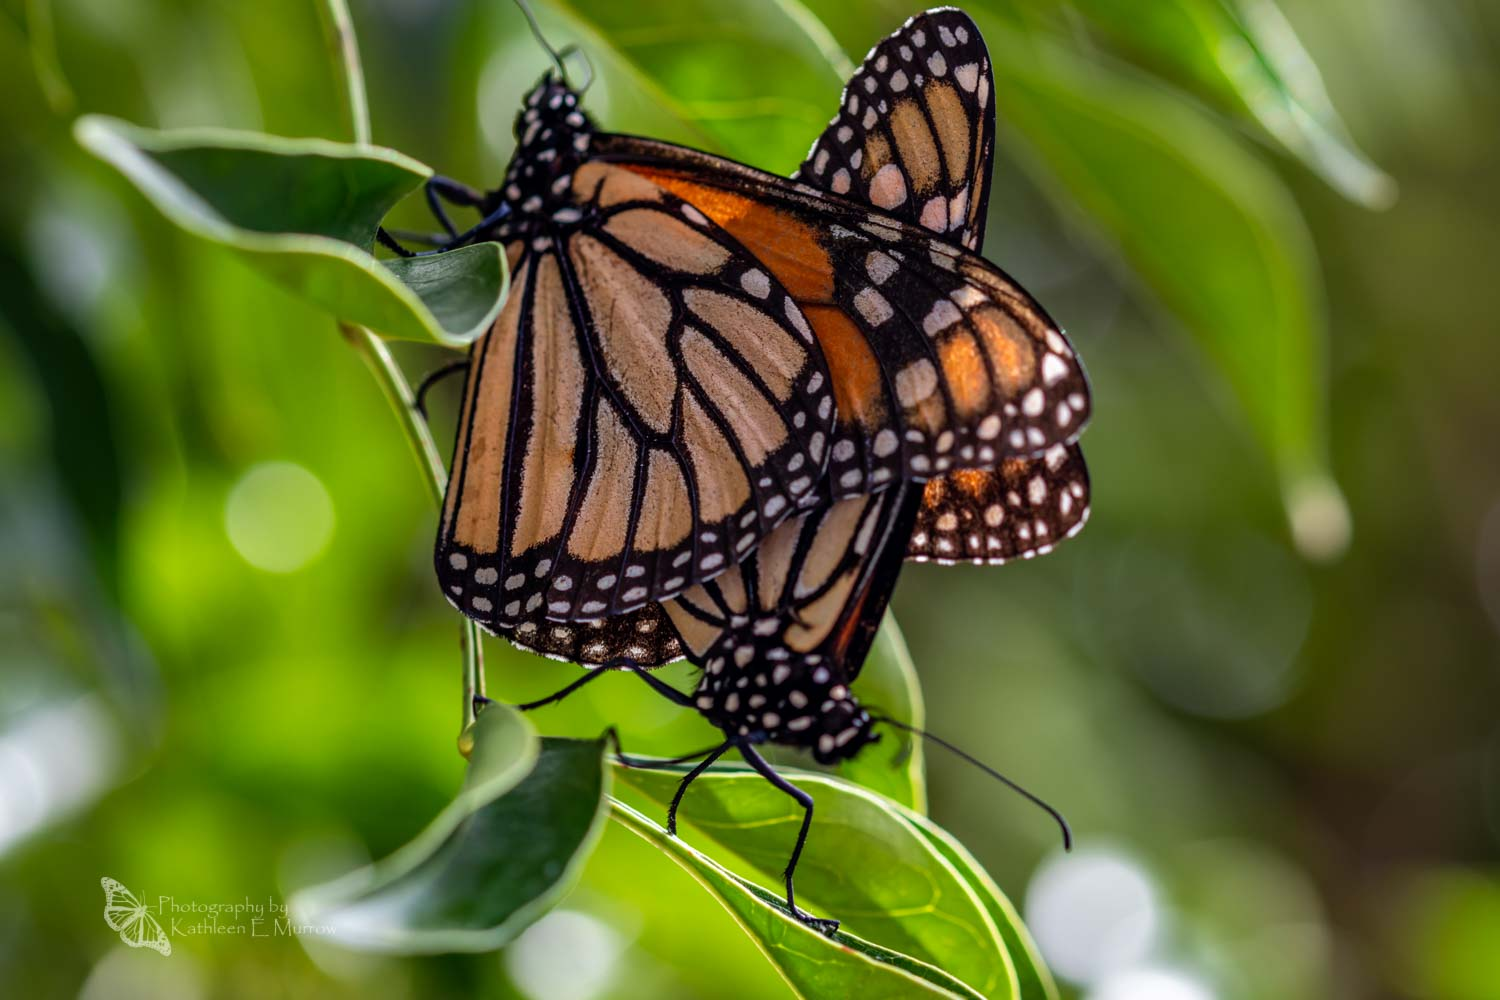 Two monarch butterflies, a male and a female linked together for mating, on the branch of a tree